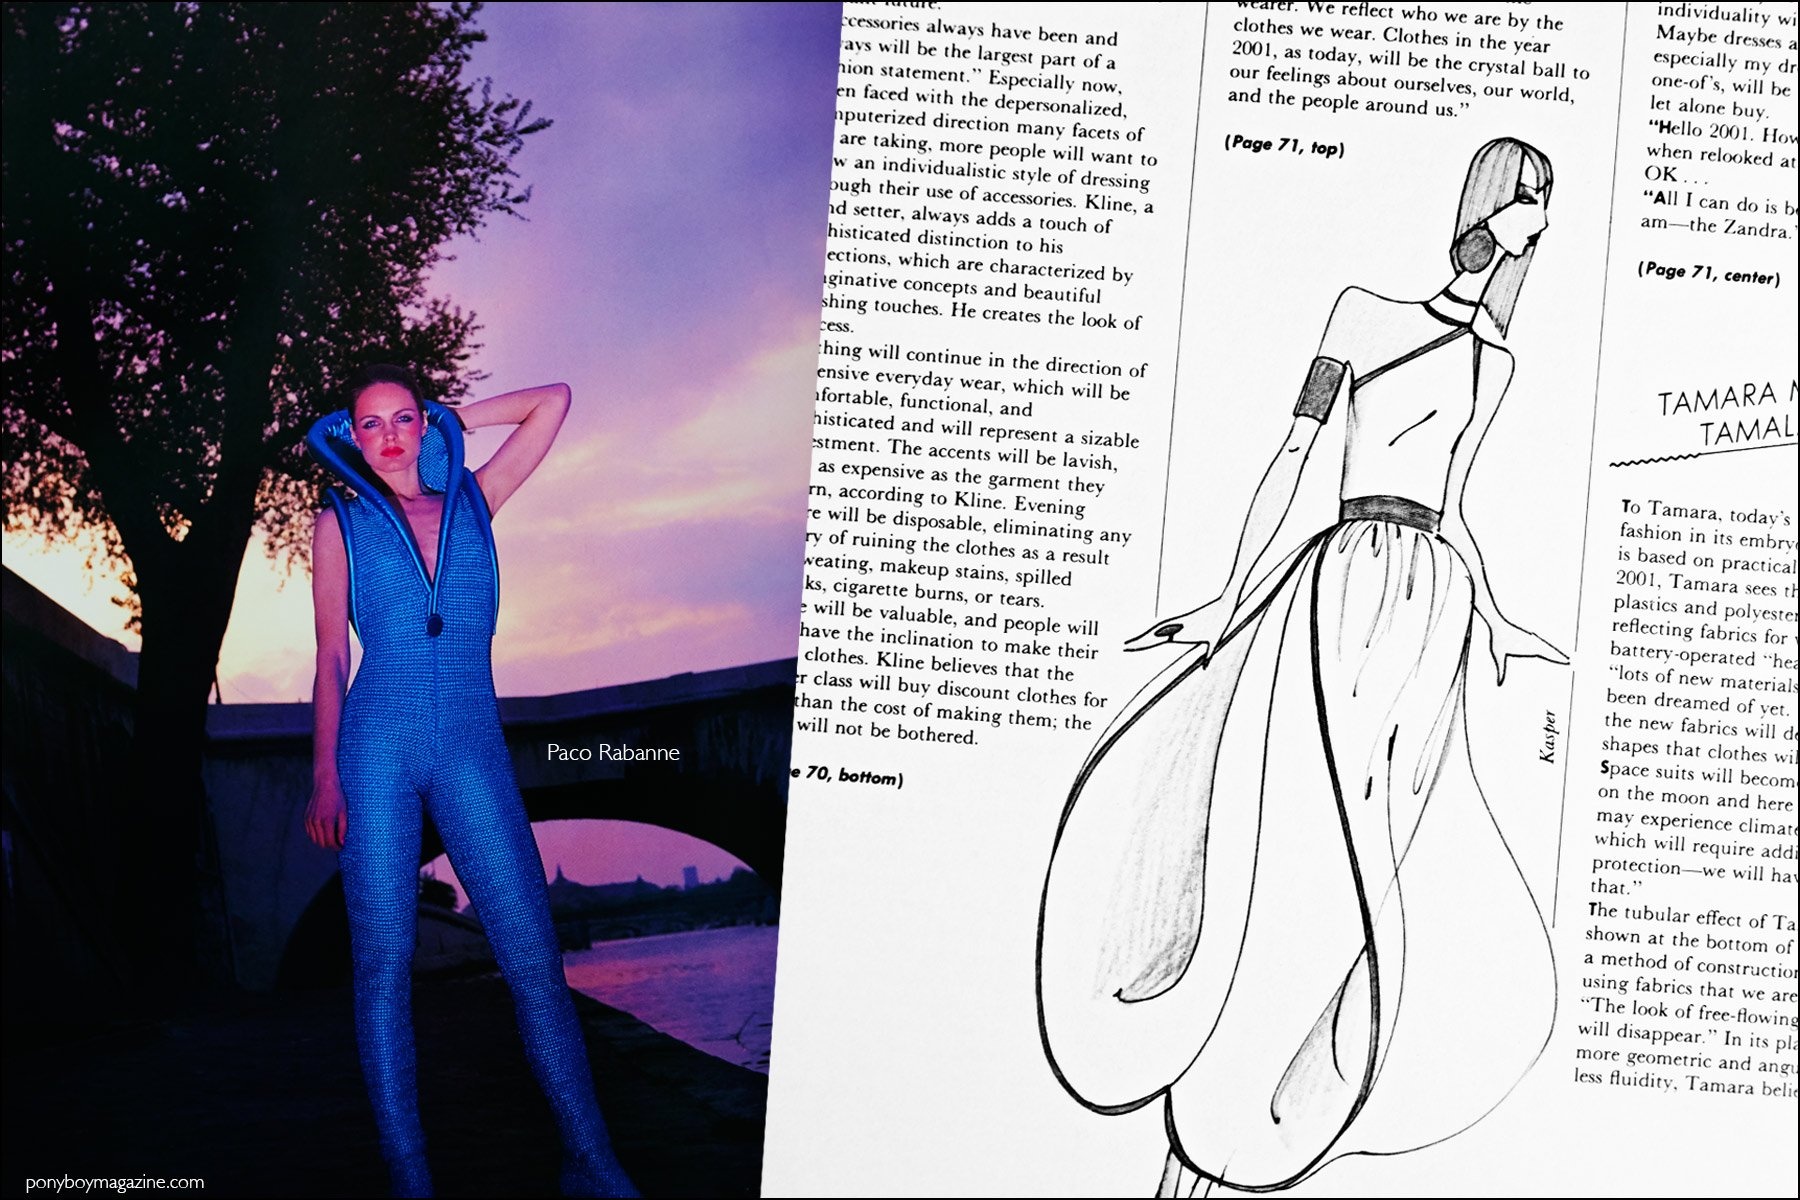 A design by Paco Rabanne and fashion sketch by Kasper, featured in the book Fashion: 2001 by Lucille Khornak. Ponyboy magazine NY.